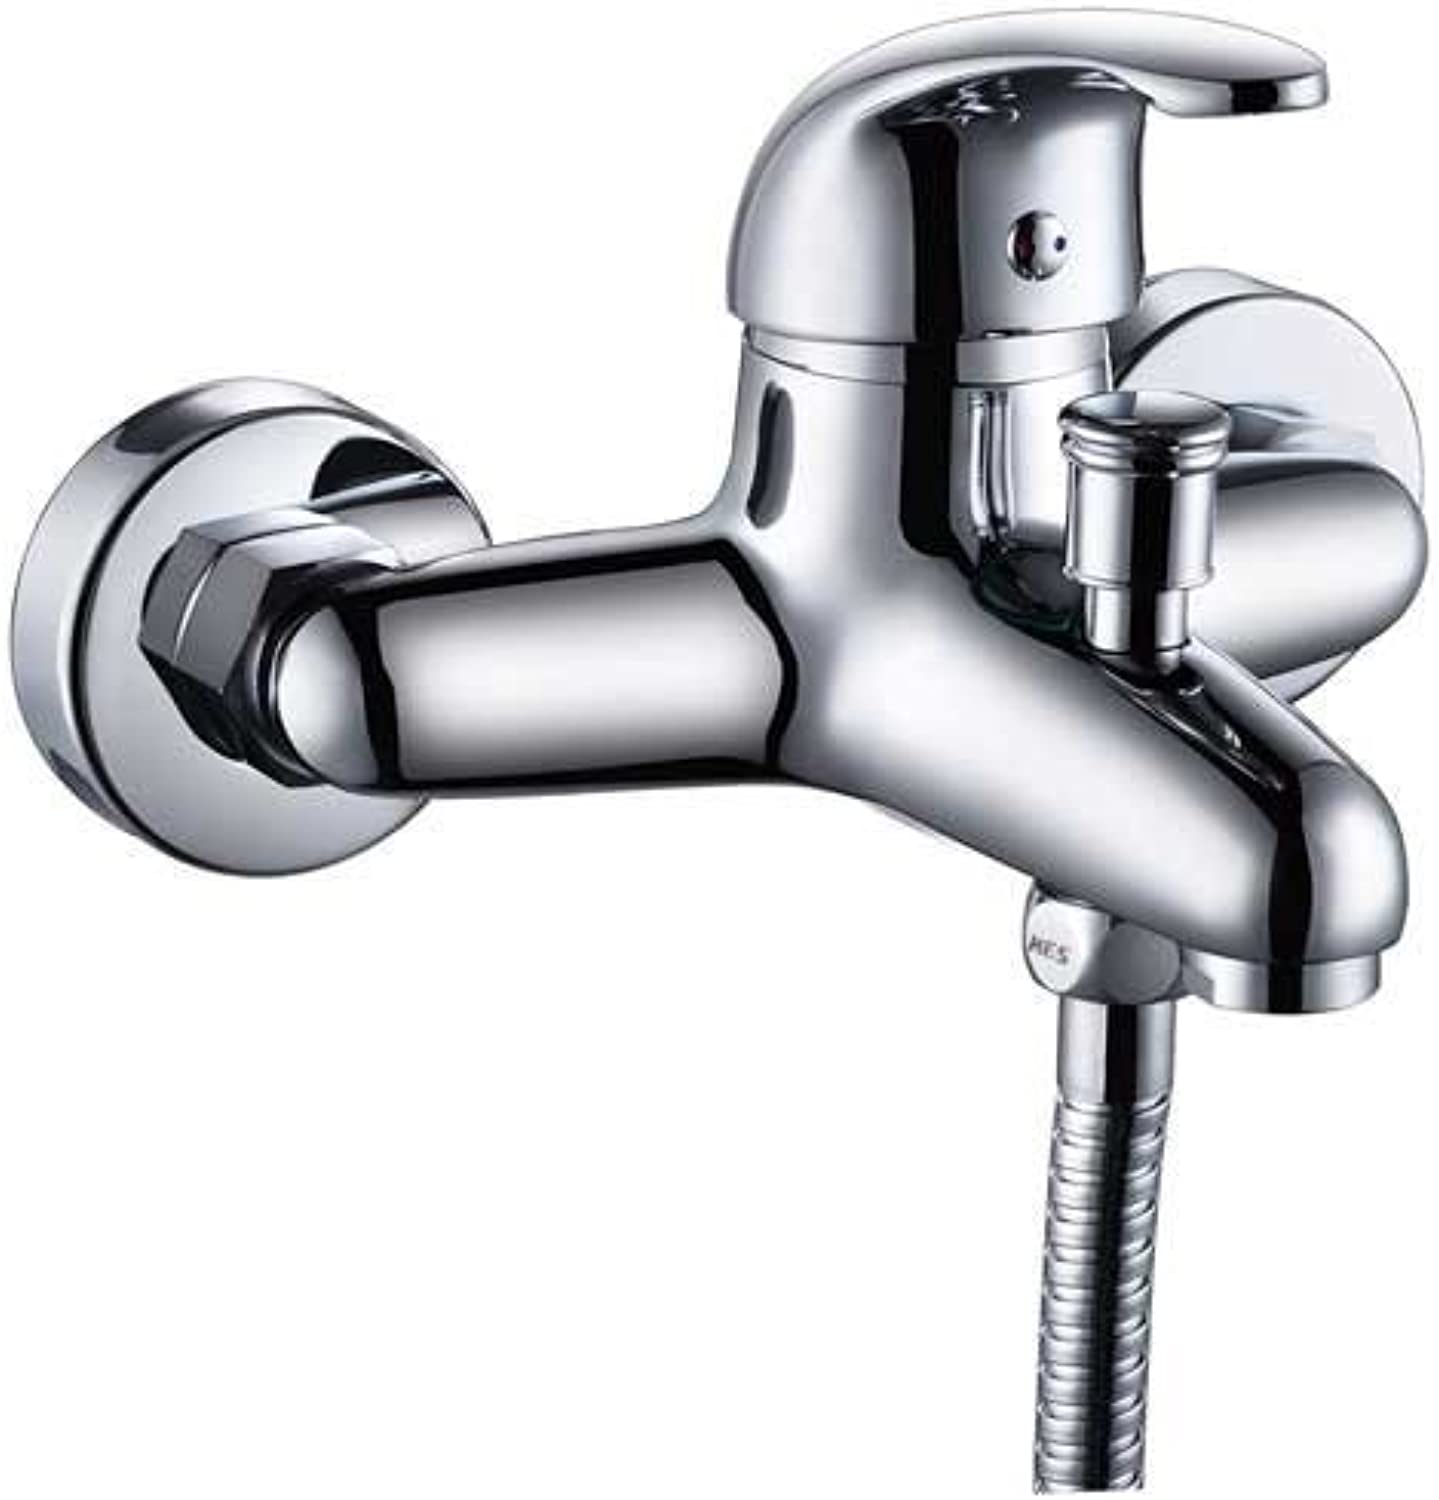 MEILING Full Copper Mixing Valve Shower Triple Bath Faucet Into The Wall